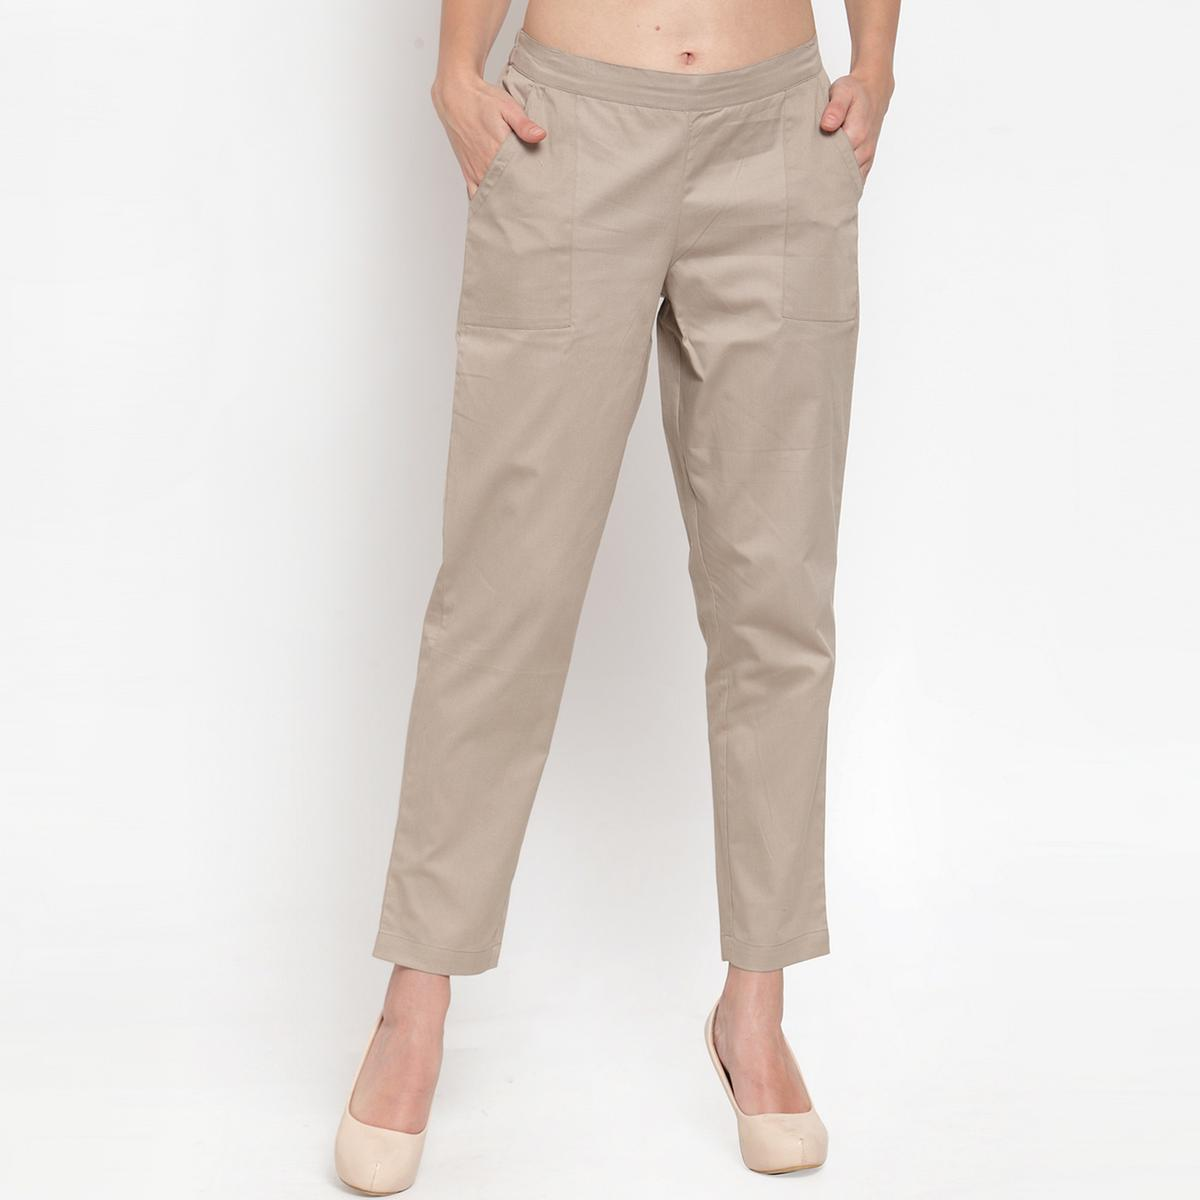 Ayaany - Beige All Purpose Casual Cotton Pants With Smart Fit